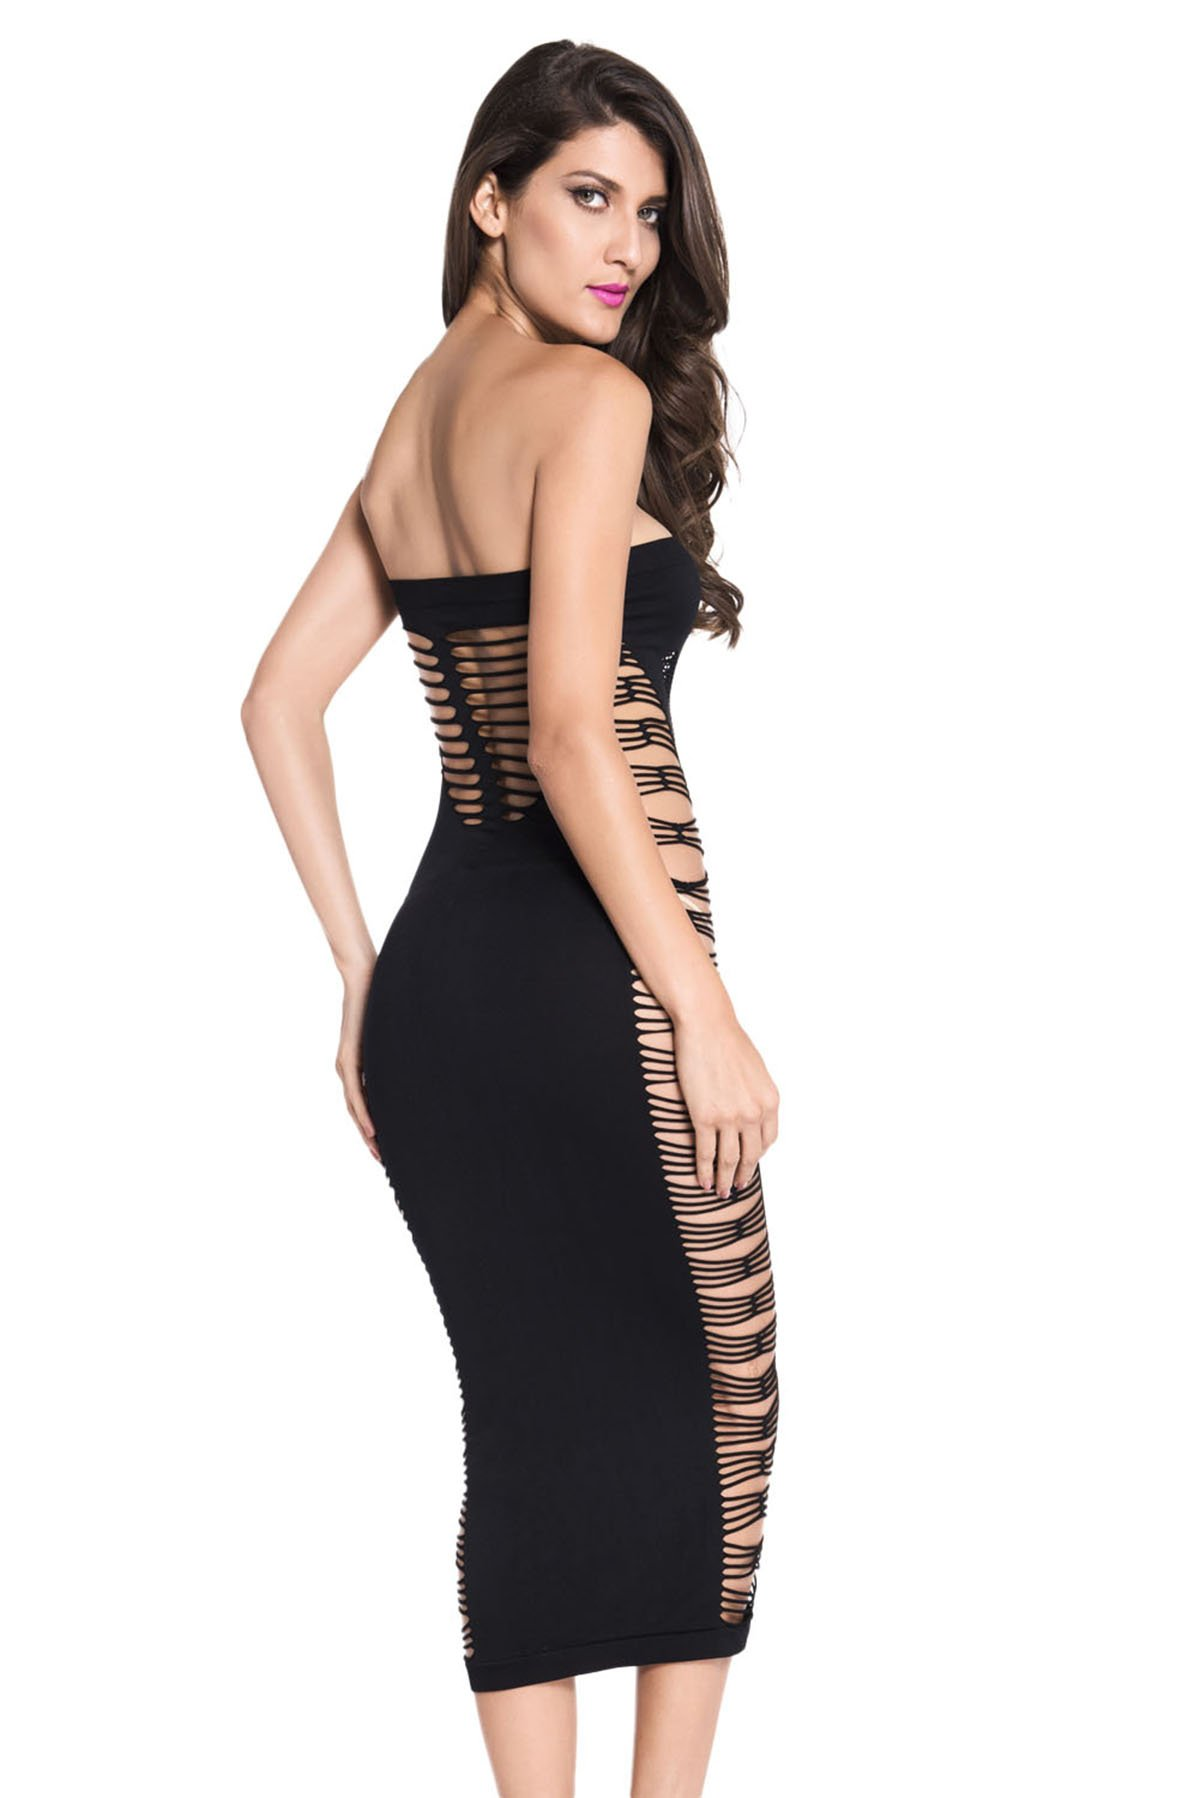 Topfly Big Spender Strapless Long Tube Dress Hollow Out Bandage Night Dress Black US XXS-L/Asian Free Size by Topfly® (Image #2)